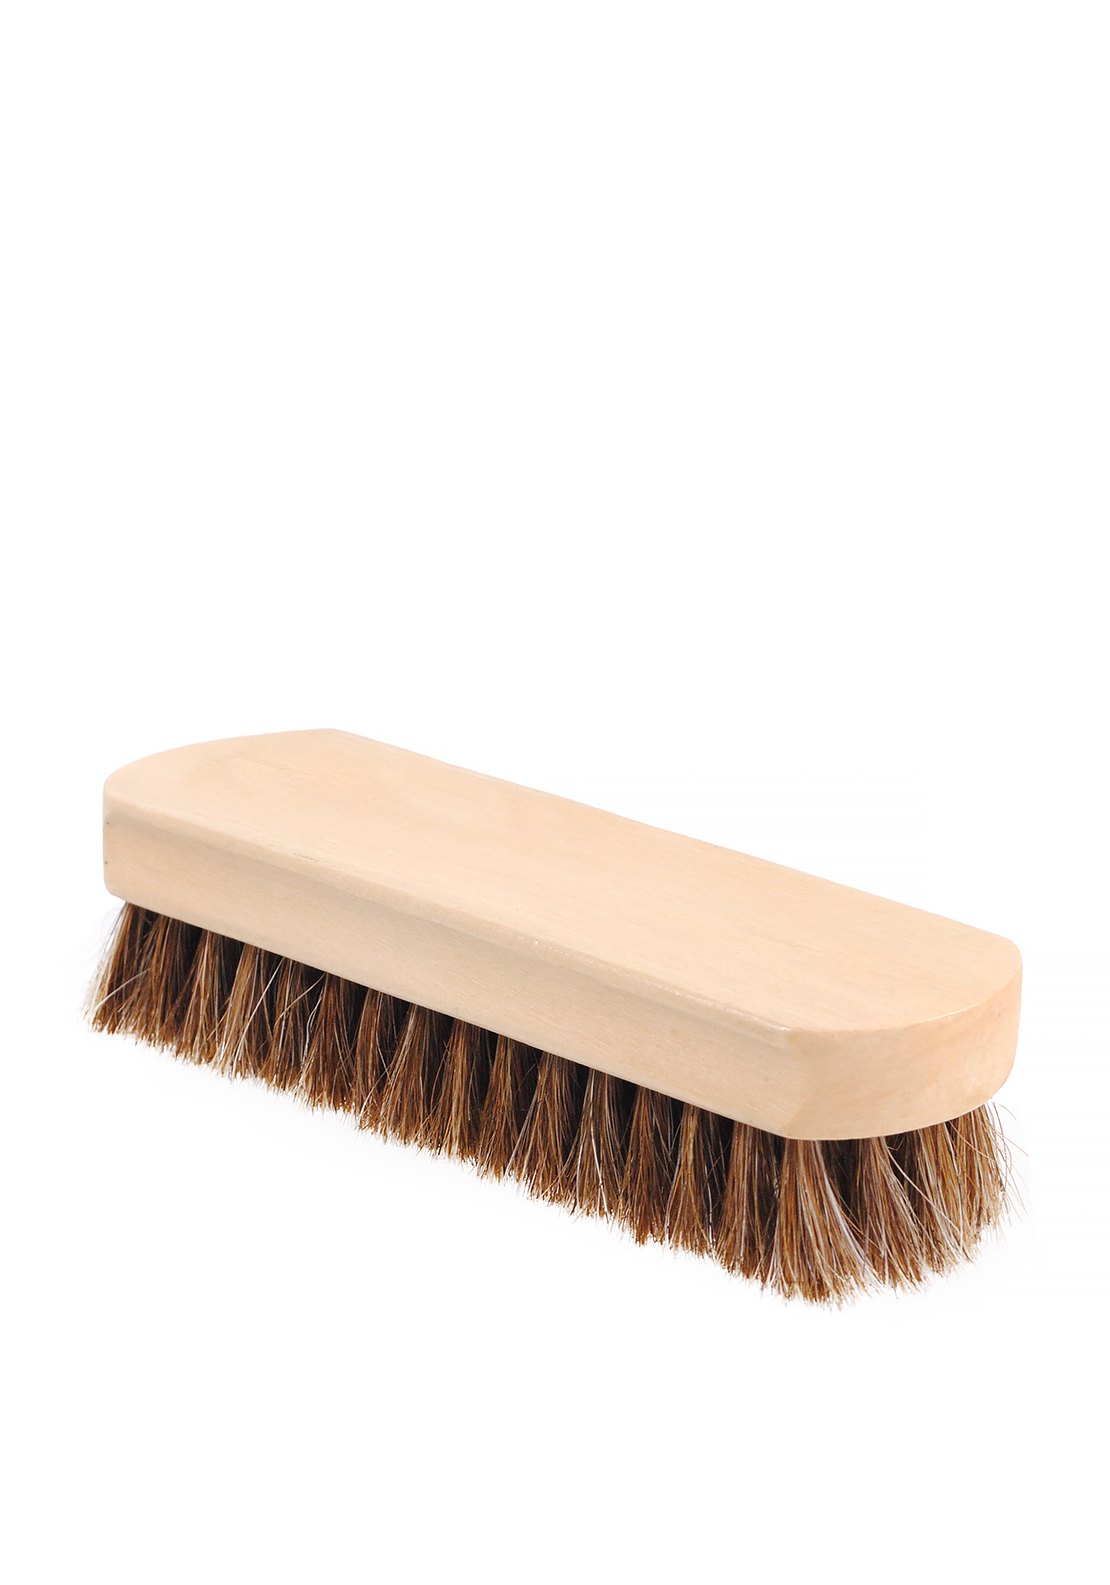 McElhinneys Shoe Care Brush